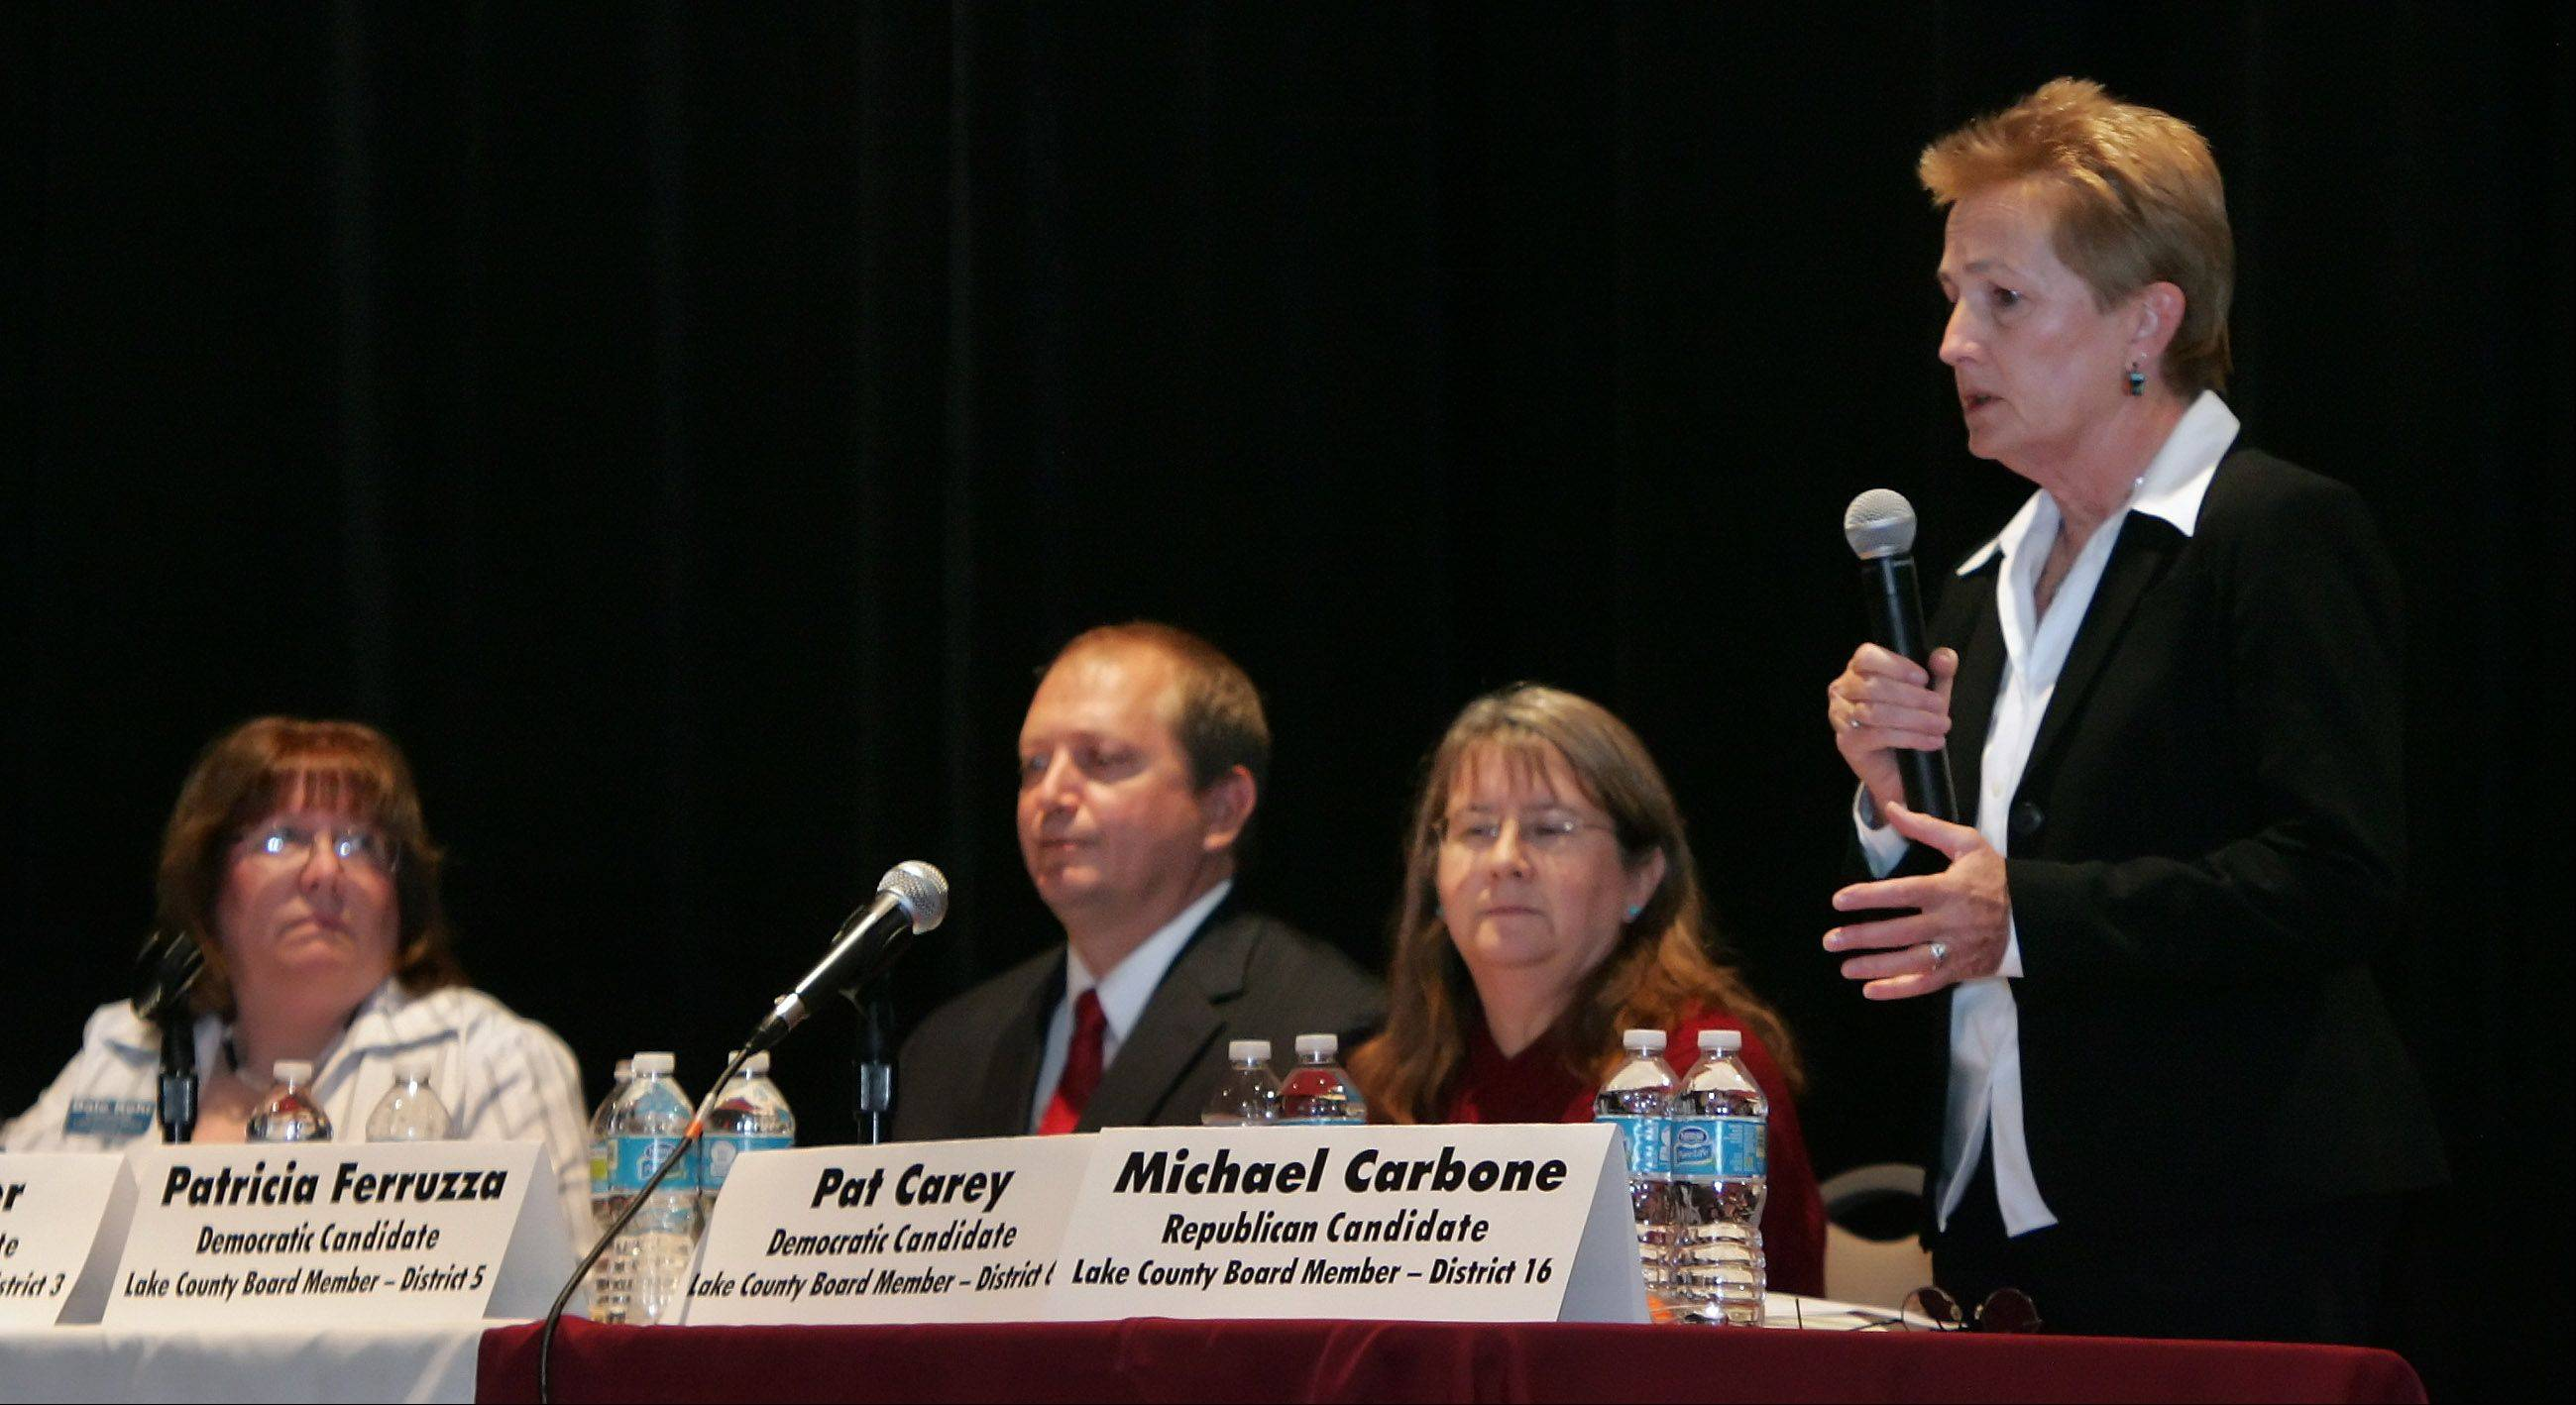 Lake County board member Pat Carey, right, speaks to the audience with candidates Patricia Ferruzza, Tom Weber and Dale Kehr during the candidate forum Sunday at the Round Lake Beach Cultural & Civic Center. The event was sponsored by the League of Women Voters and the Round Lake Area Public Library.